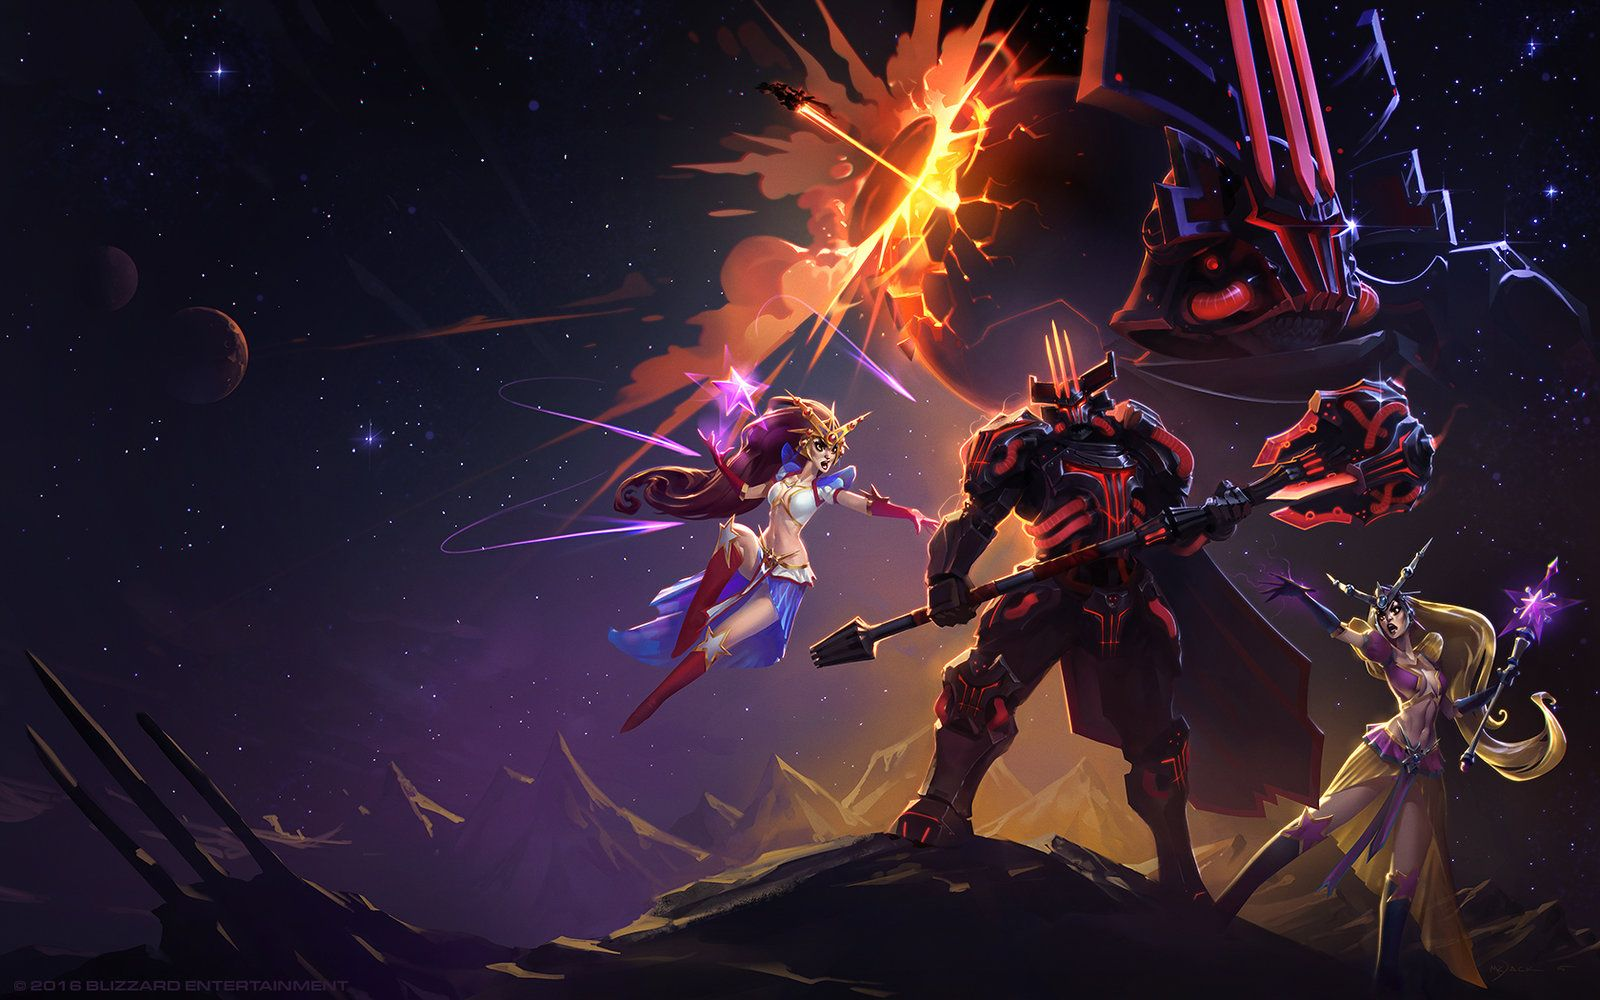 Leoric The Space Lord Heroes Of The Storm Hero Storm Images Collaborative list created by player votes. heroes of the storm hero storm